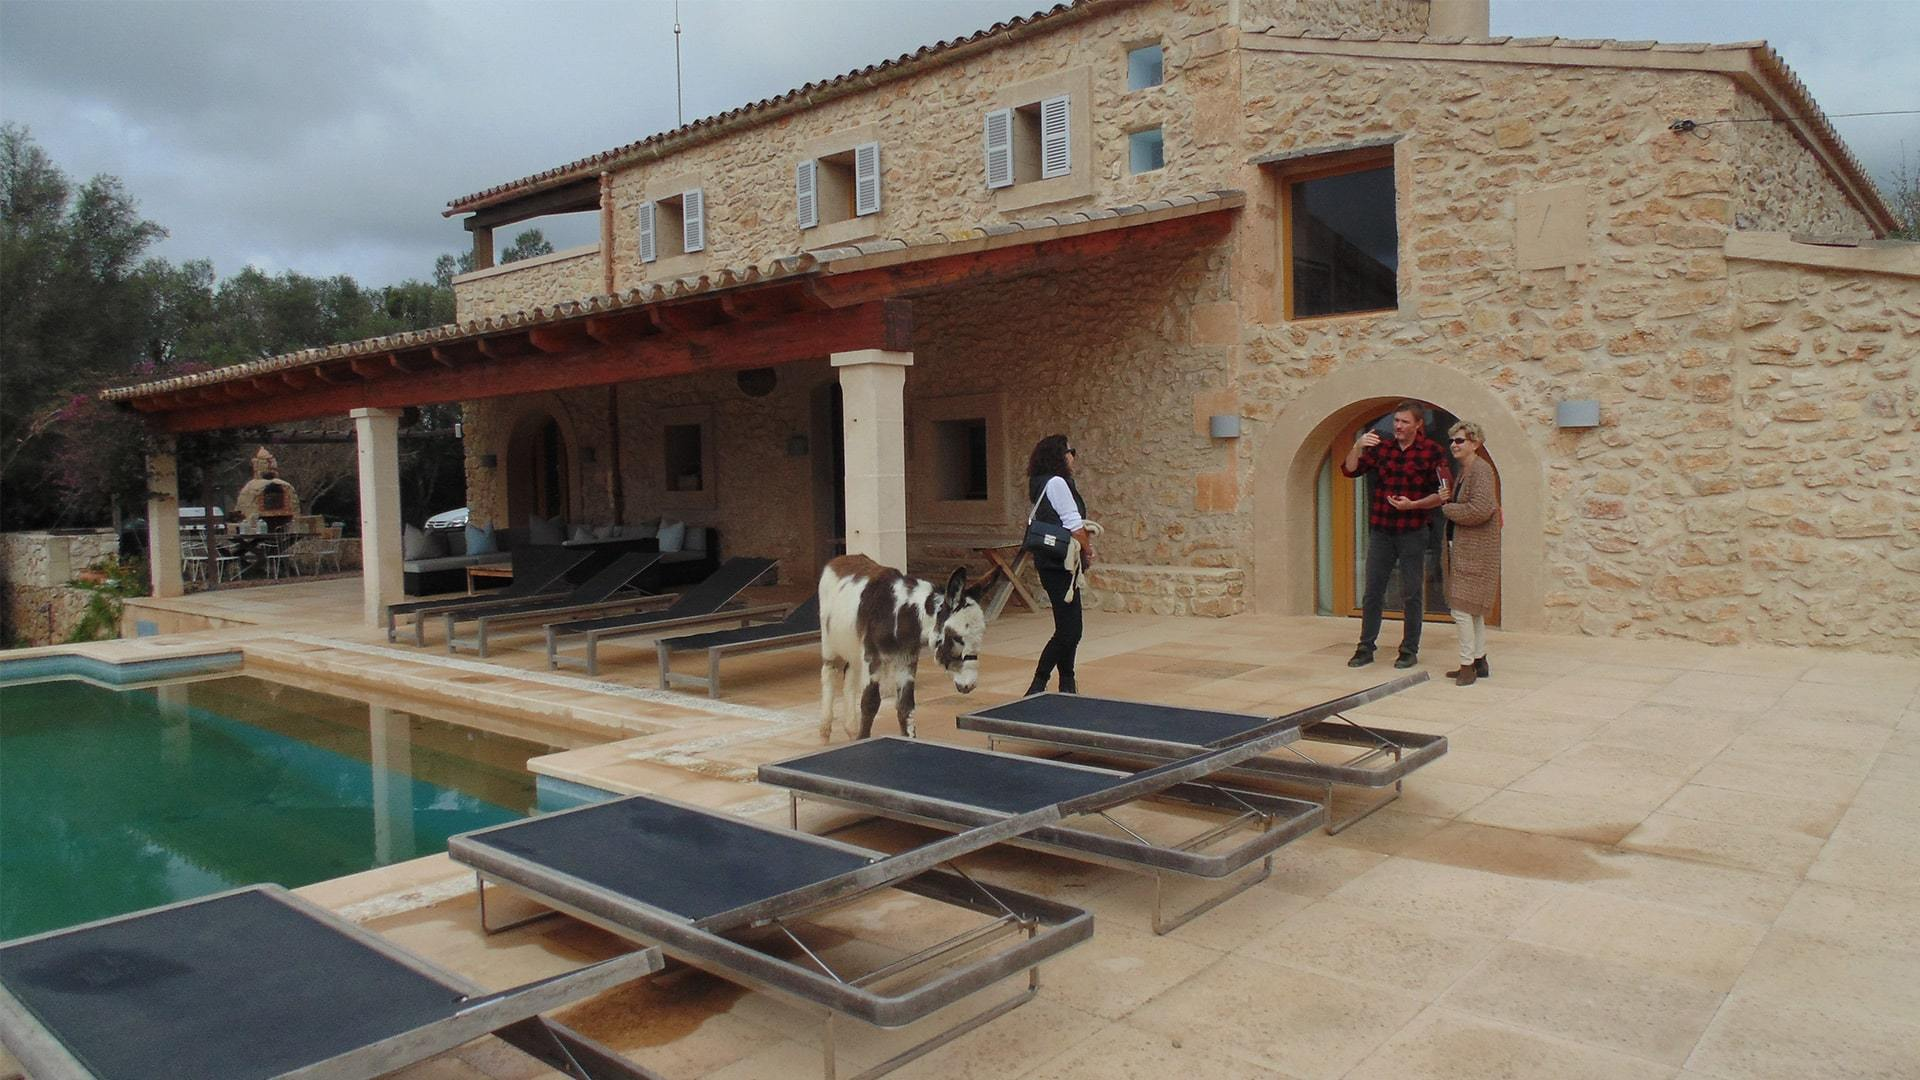 Solysia solar pannels Mallorca house pool and donkey min